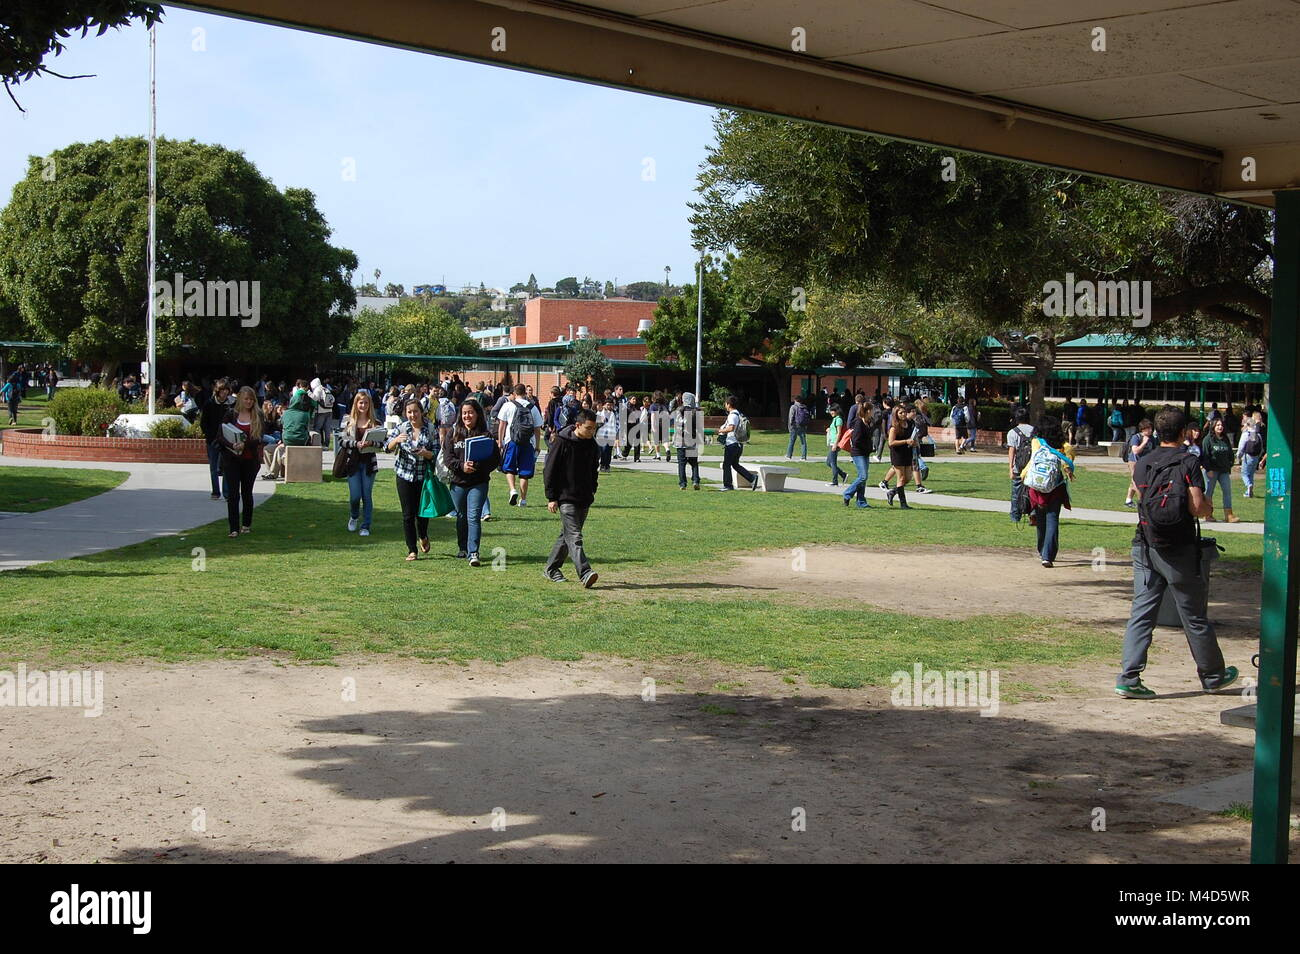 Teenagers at a Southern California High School walk to their classrooms - Stock Image